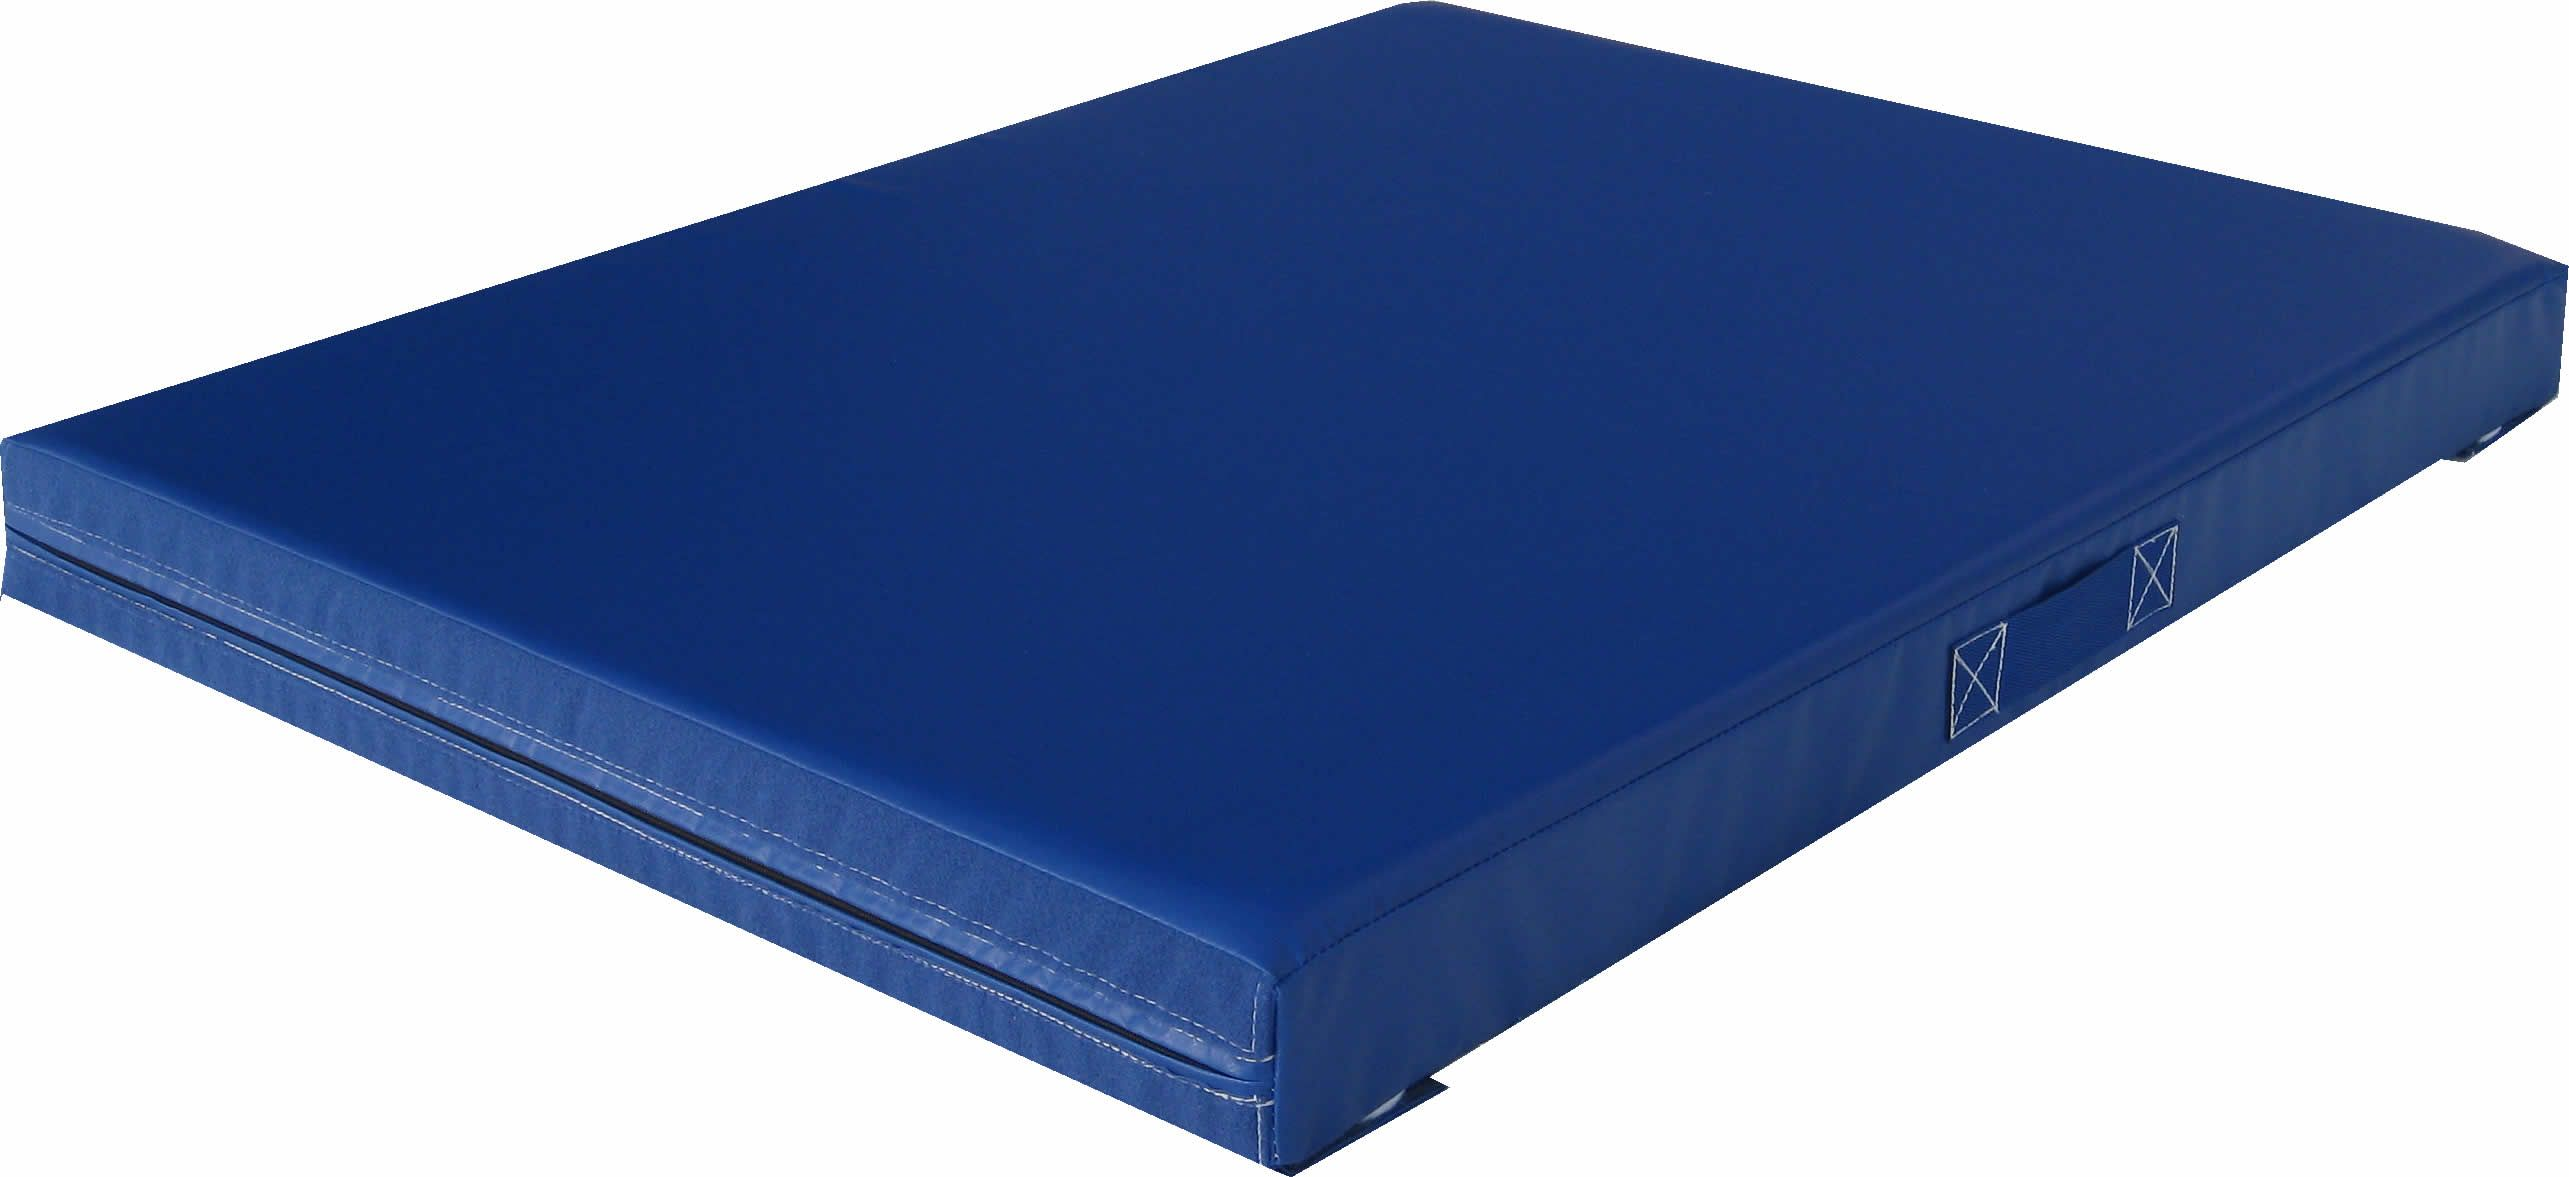 mats bouncier to spring on a used be tumbling or strip rebound tumbl panel gymnastics than the foam pin offers carpet rod designed floor air trak